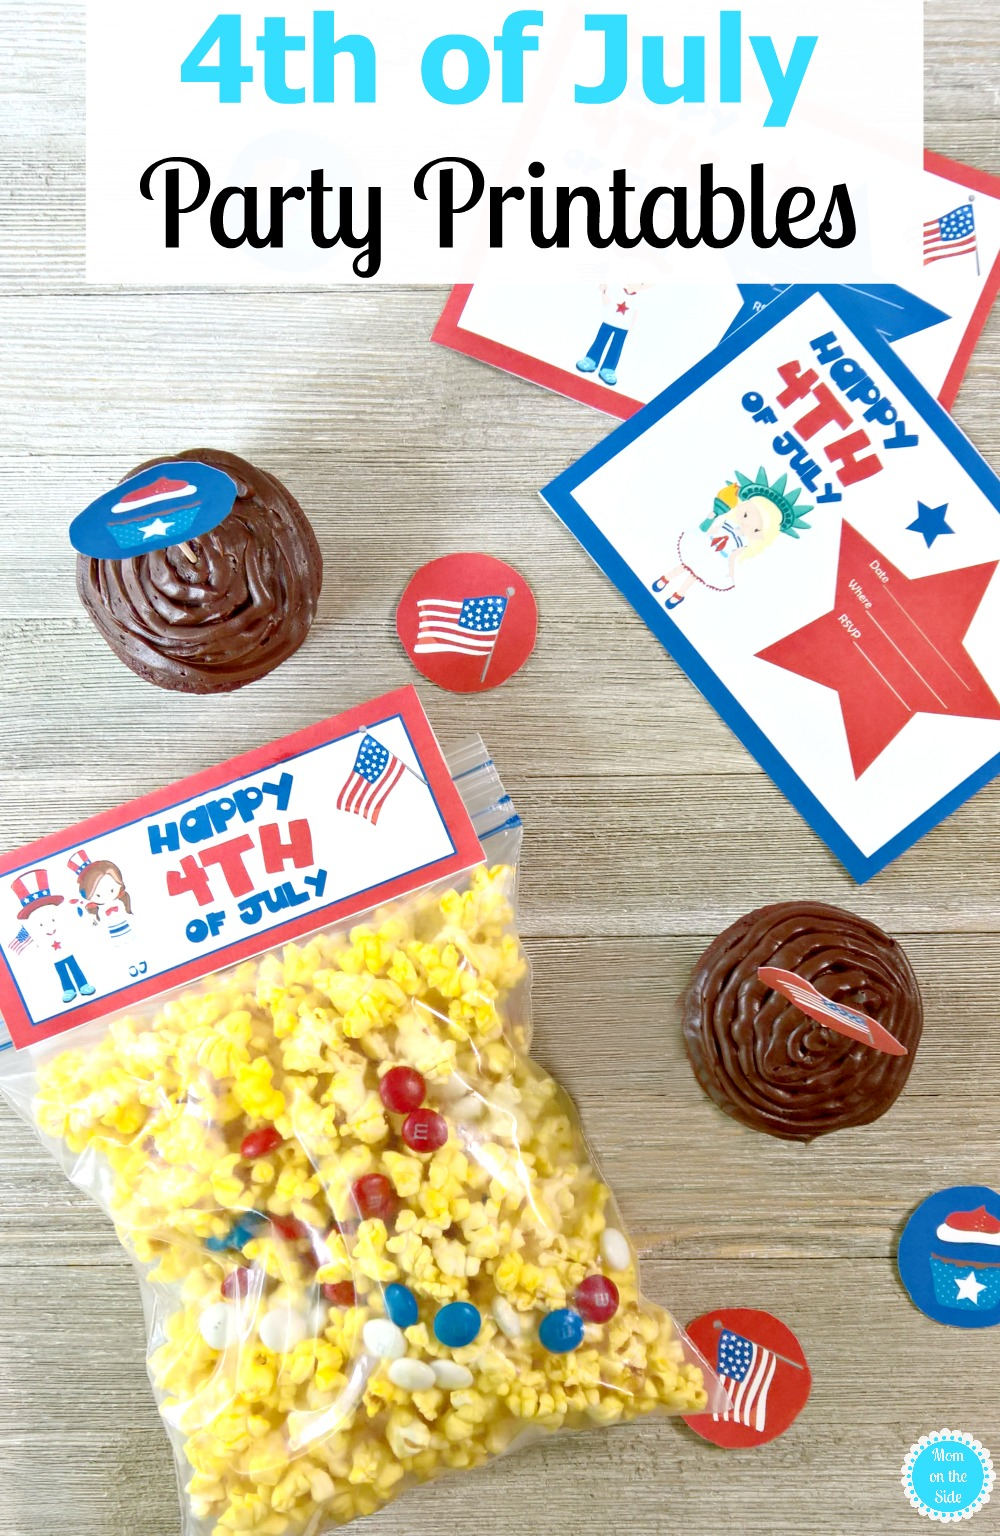 4th of July Printables - Invitations, Cupcake Toppers, and Snack Bag Toppers